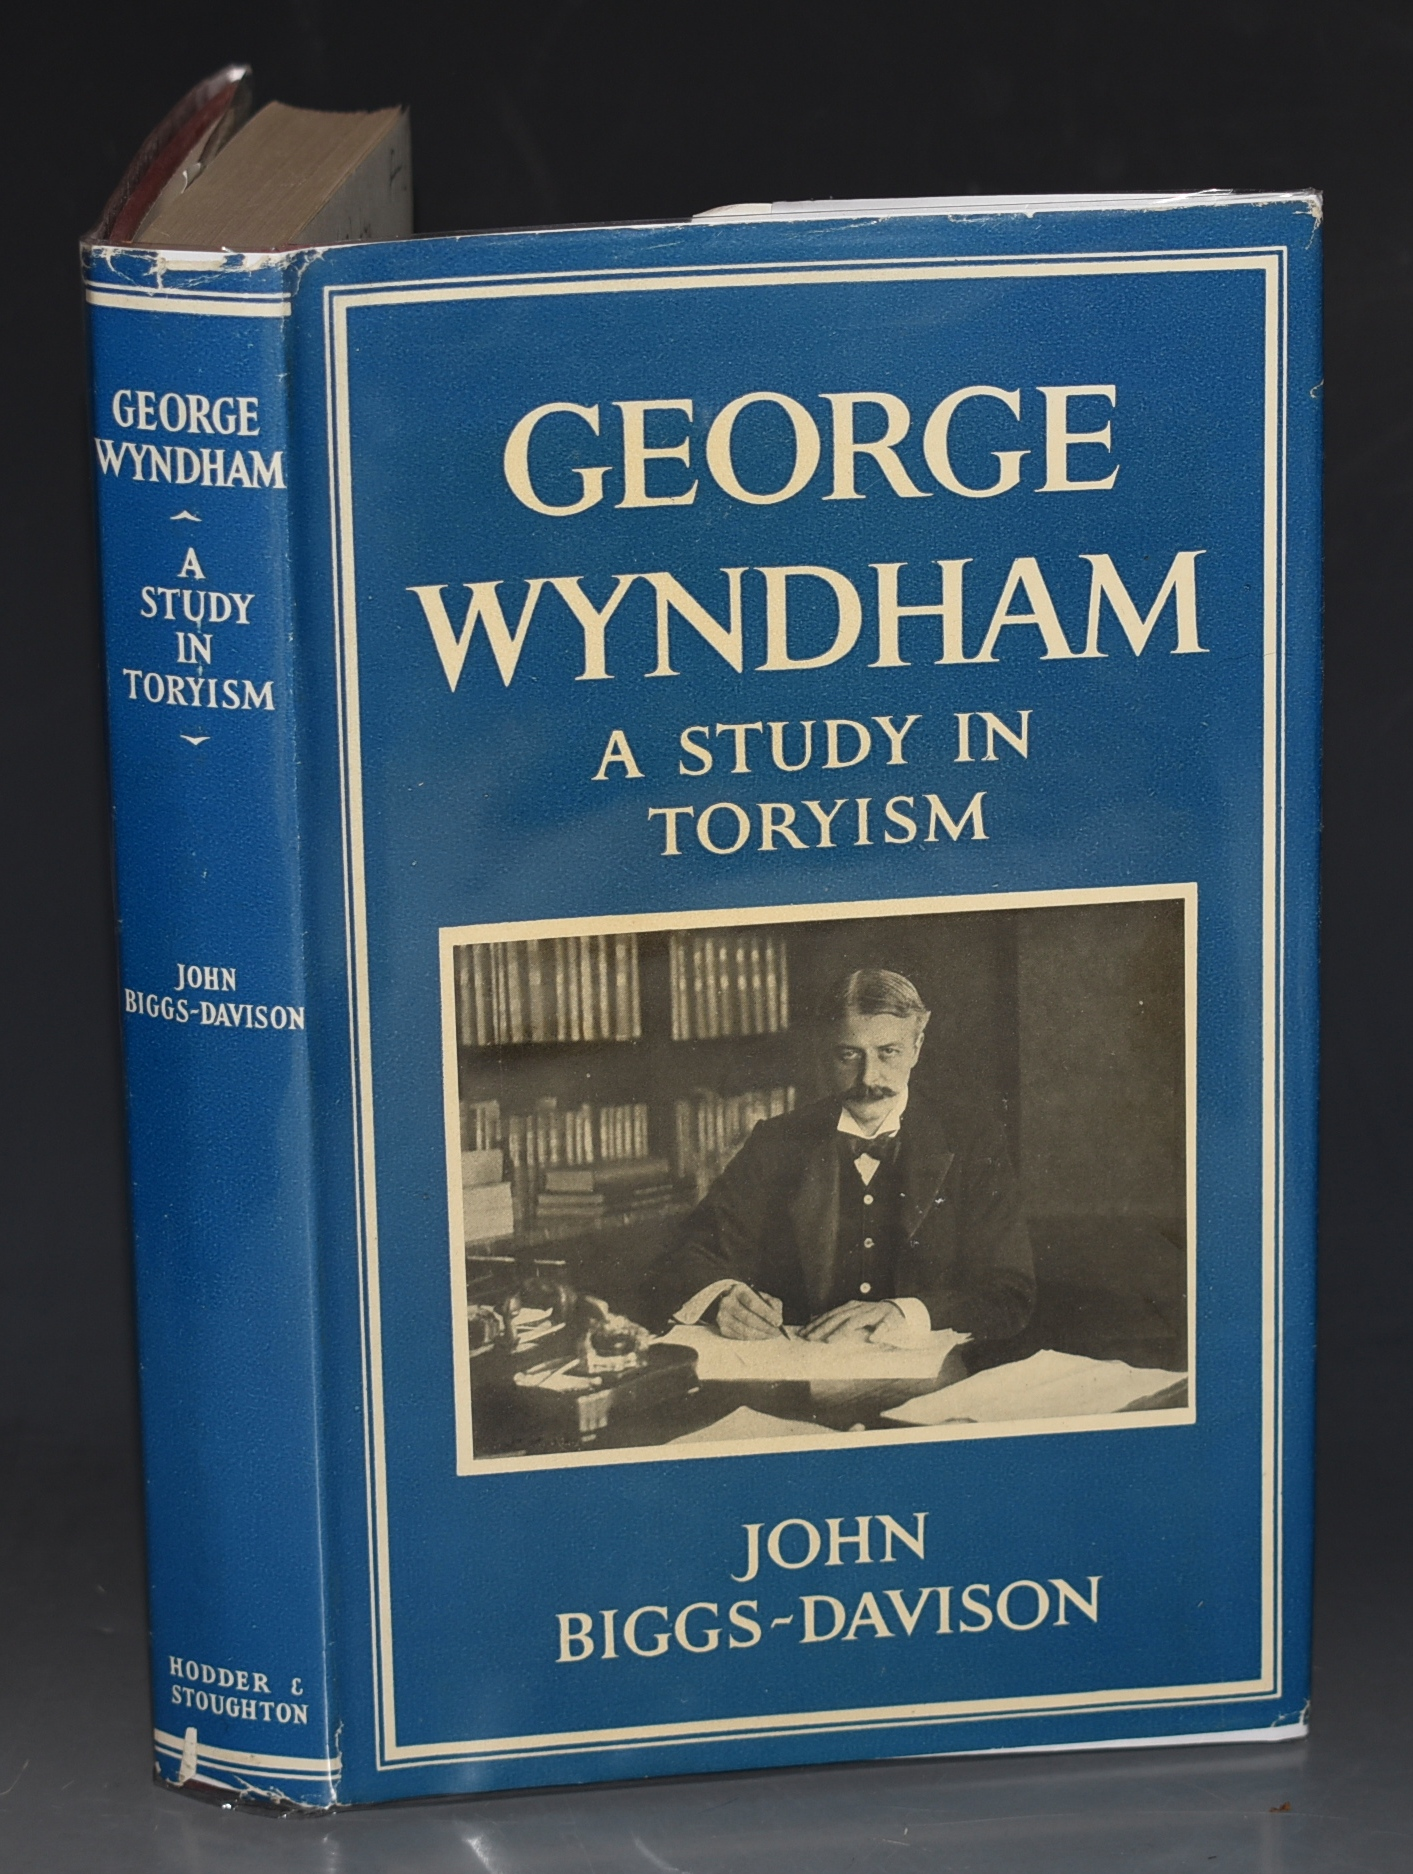 Image for George Wyndham. A Study in Toryism. SIGNED COPY.